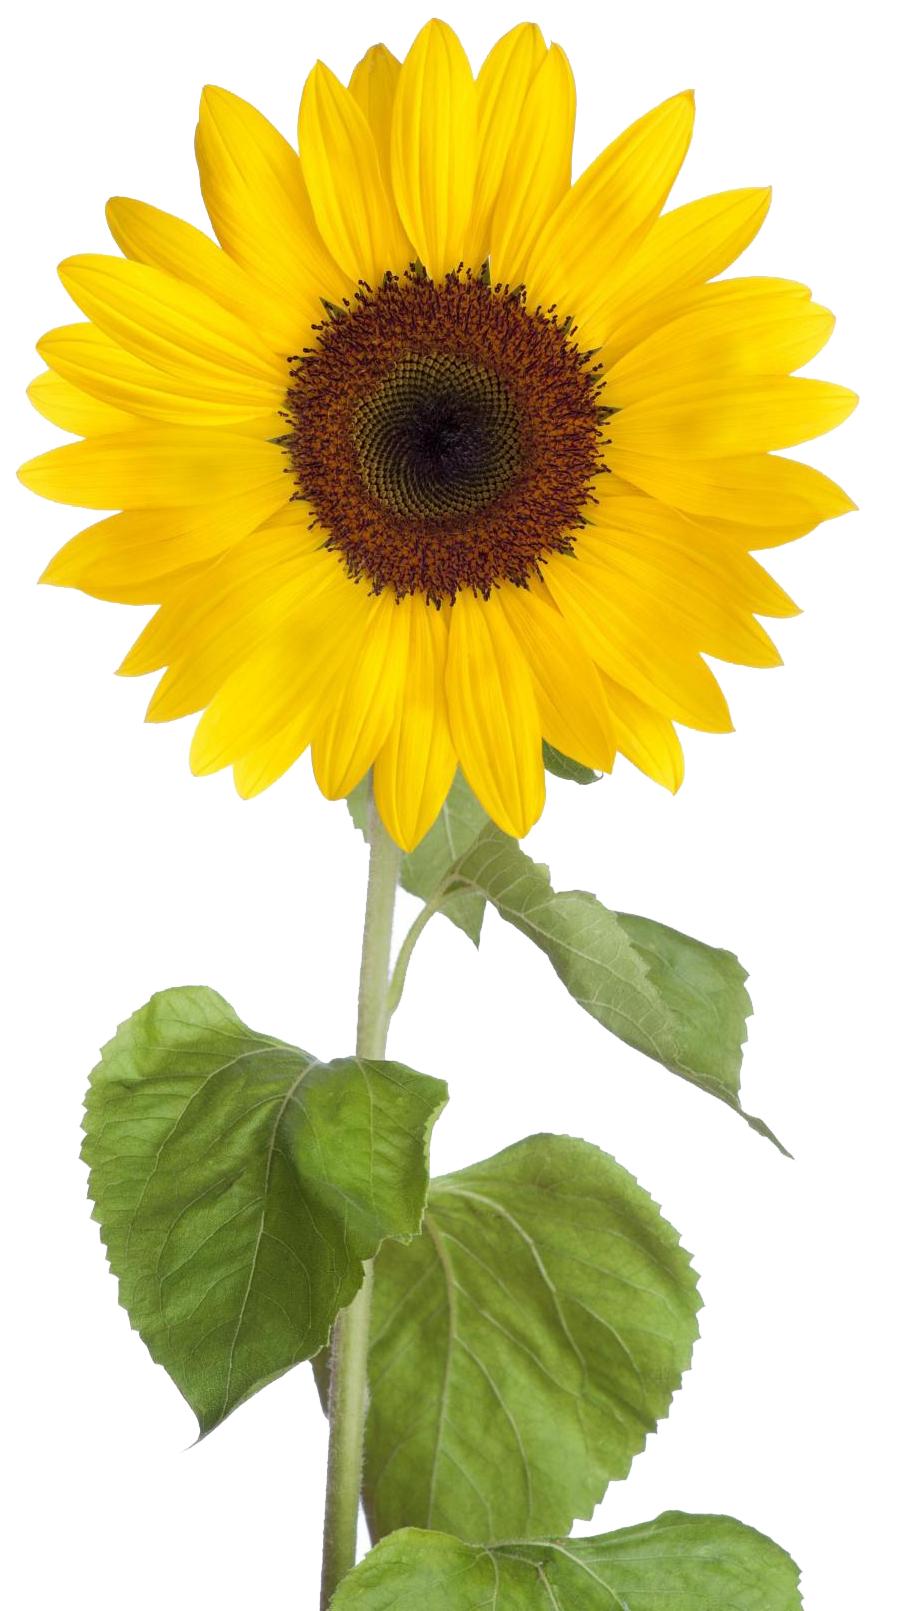 clipart transparent Sunflower png images free. Sunflowers clipart transparent background